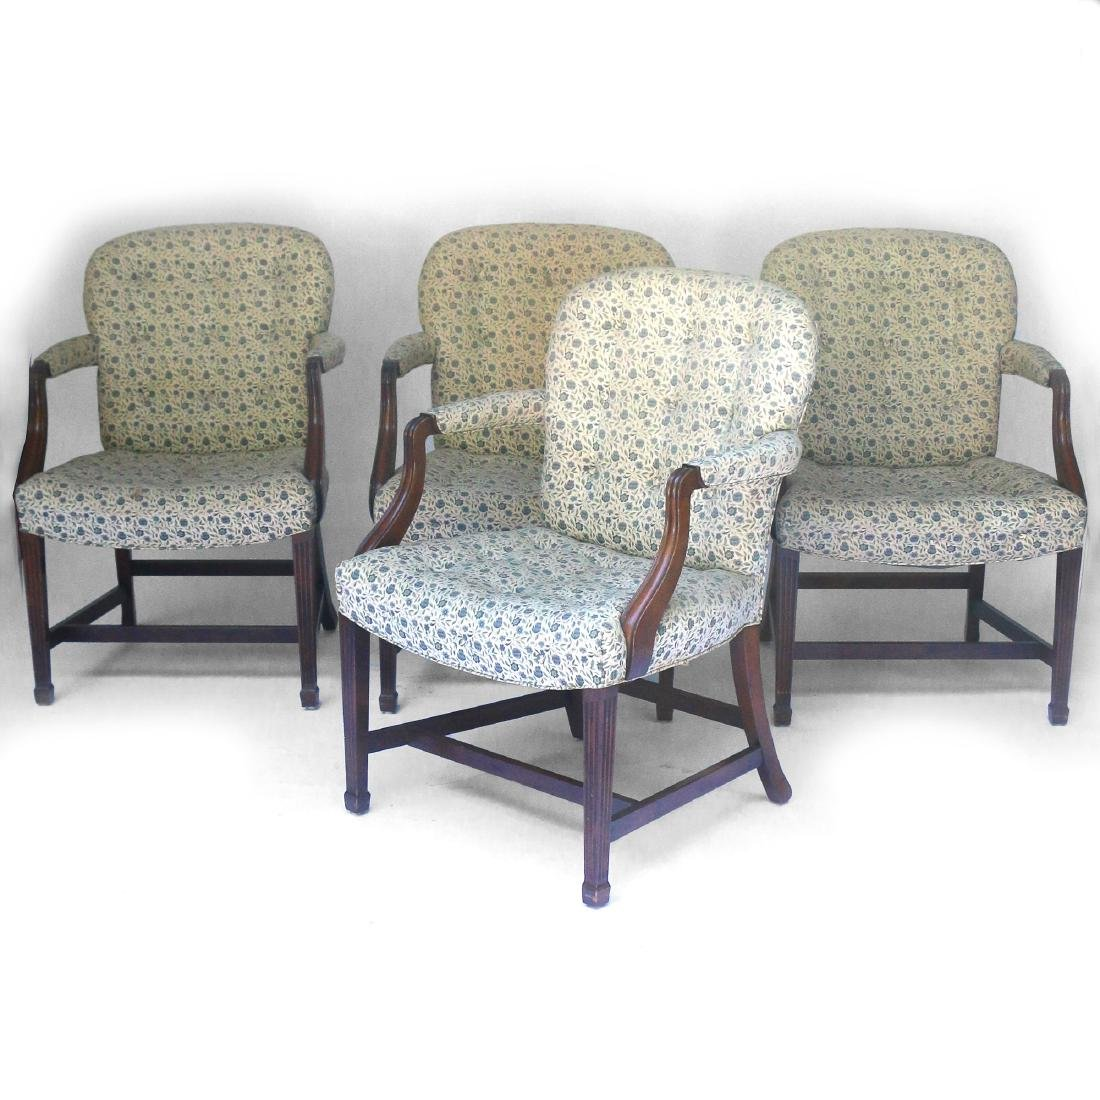 (4pc) KITTINGER CHIPPENDALE-STYLE OPEN ARMCHAIRS